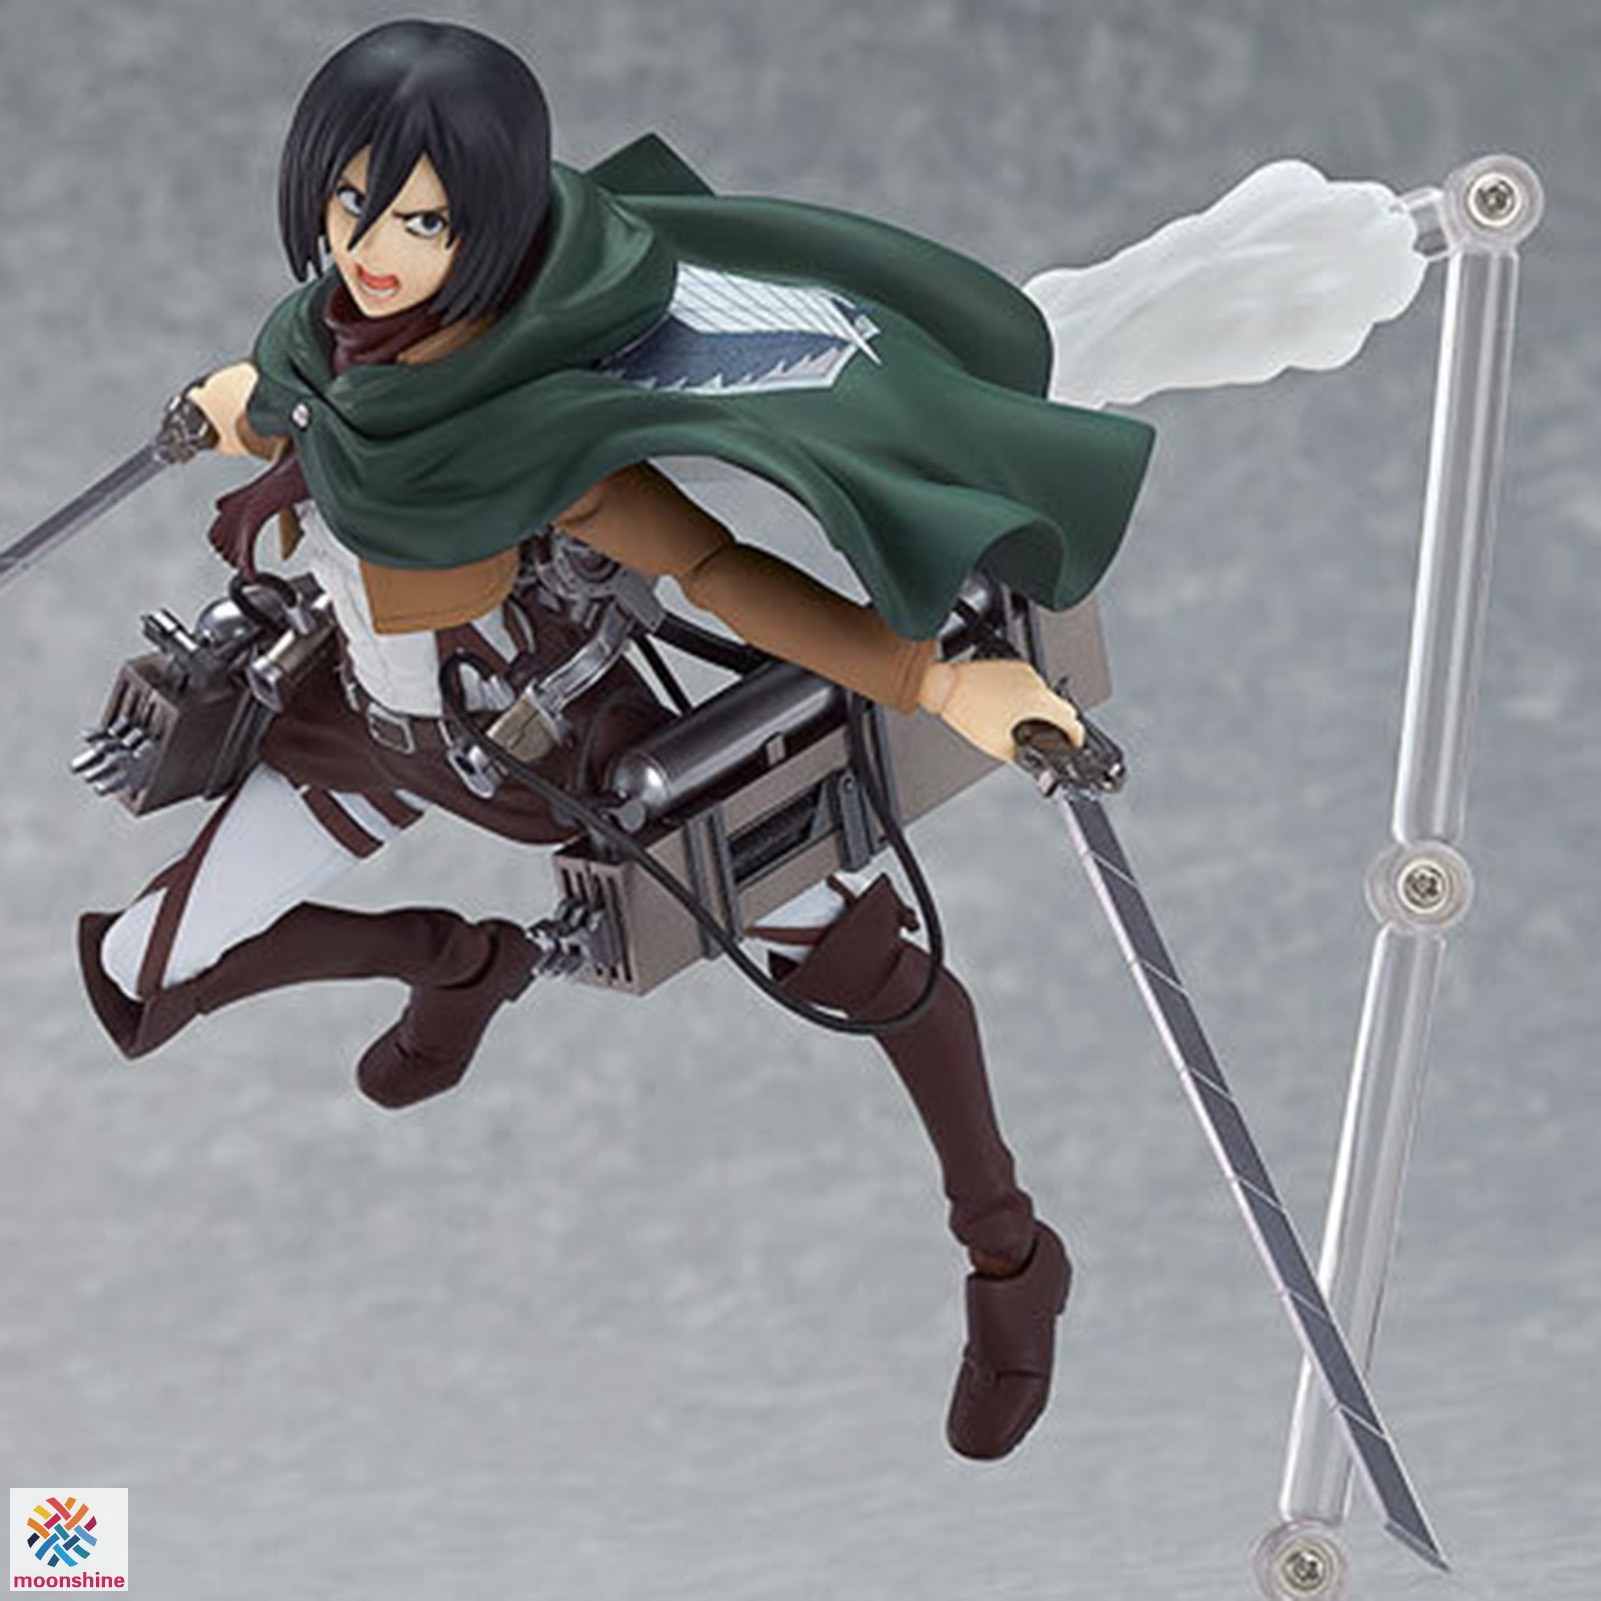 ❤PG❤ Attack on Titan Mikasa Ackerman PVC Figure Changeable Face Anime Action Figure Model Toy